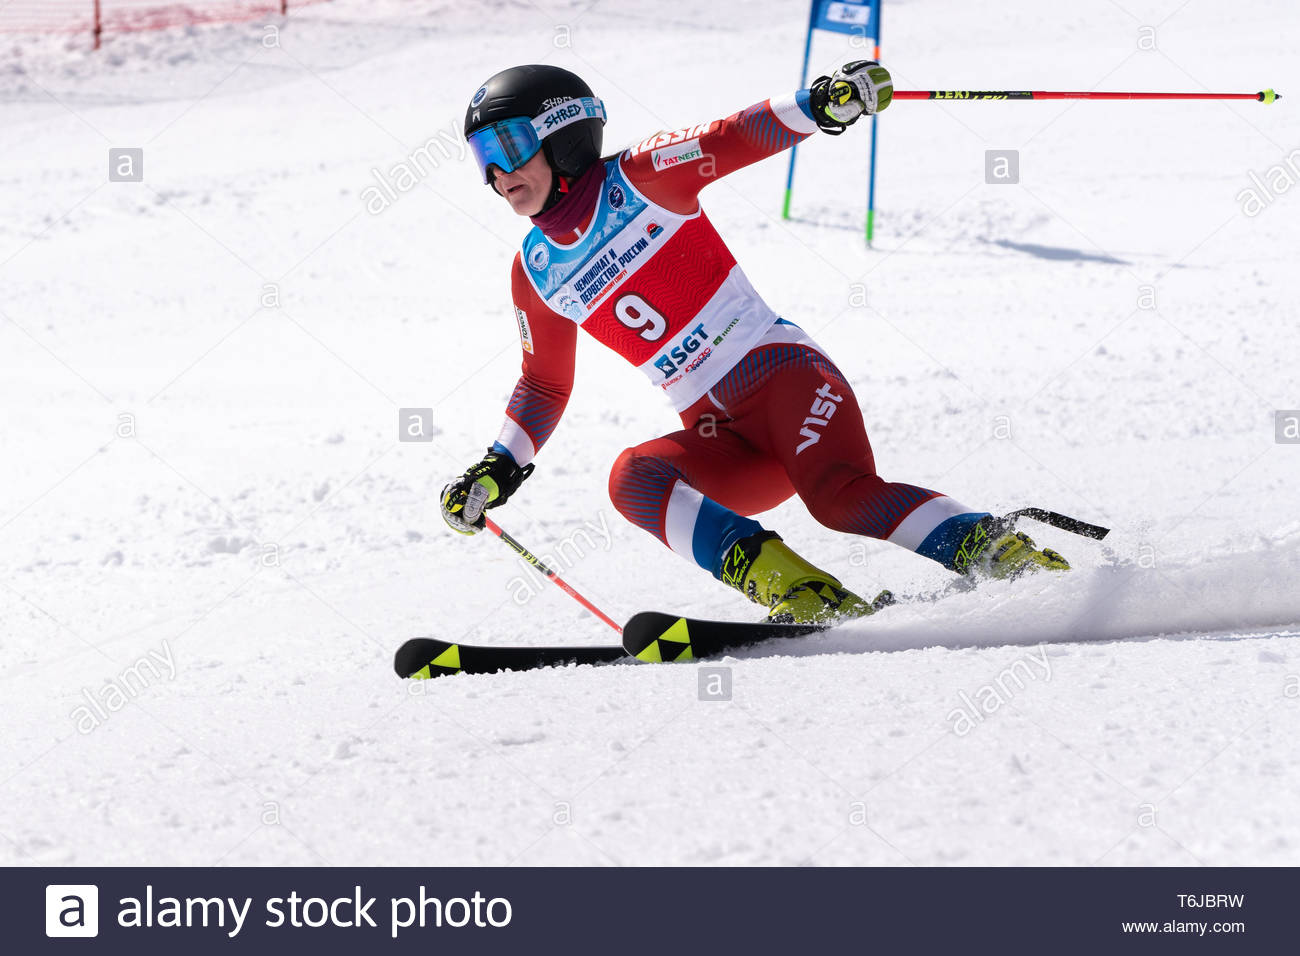 KAMCHATKA PENINSULA, RUSSIAN FEDERATION - APRIL 1, 2019: Mountain skier Melnikova Polina (Moscow) skiing down snowy mountain slope. Russian Women's Al - Stock Image